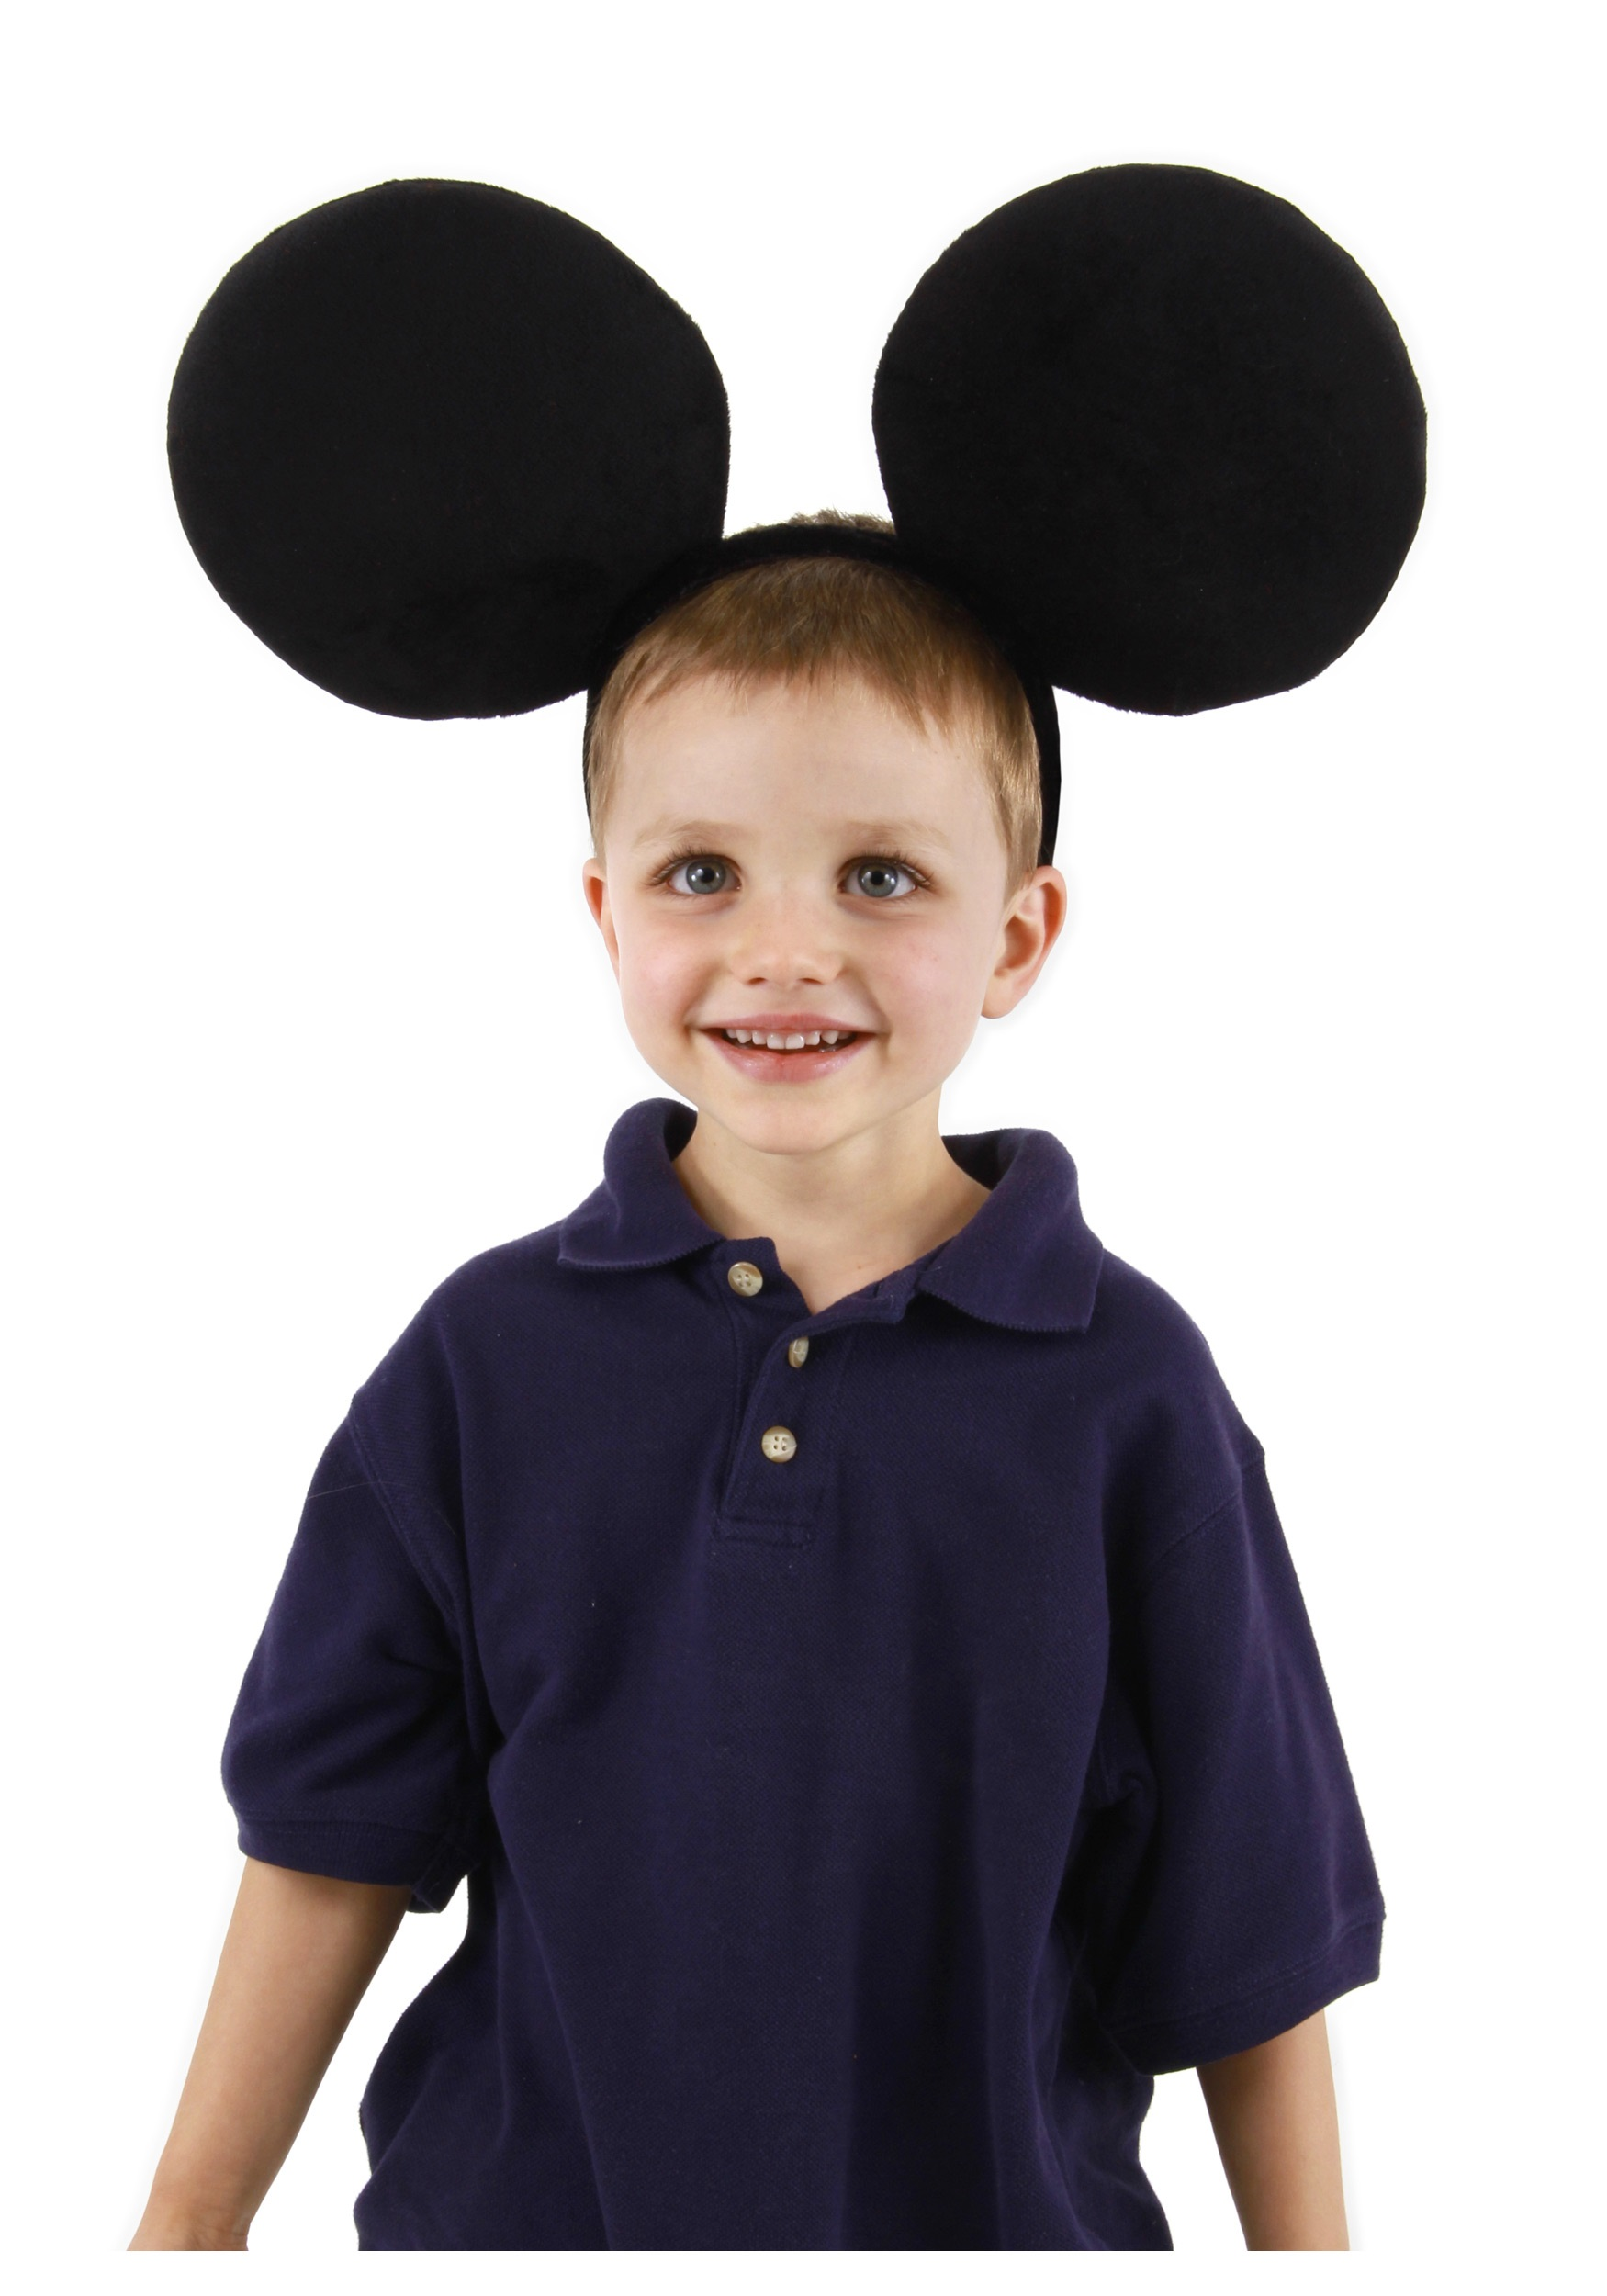 Oversized Mickey Ears  sc 1 st  Halloween Costumes & Oversized Mickey Ears - Halloween Costumes